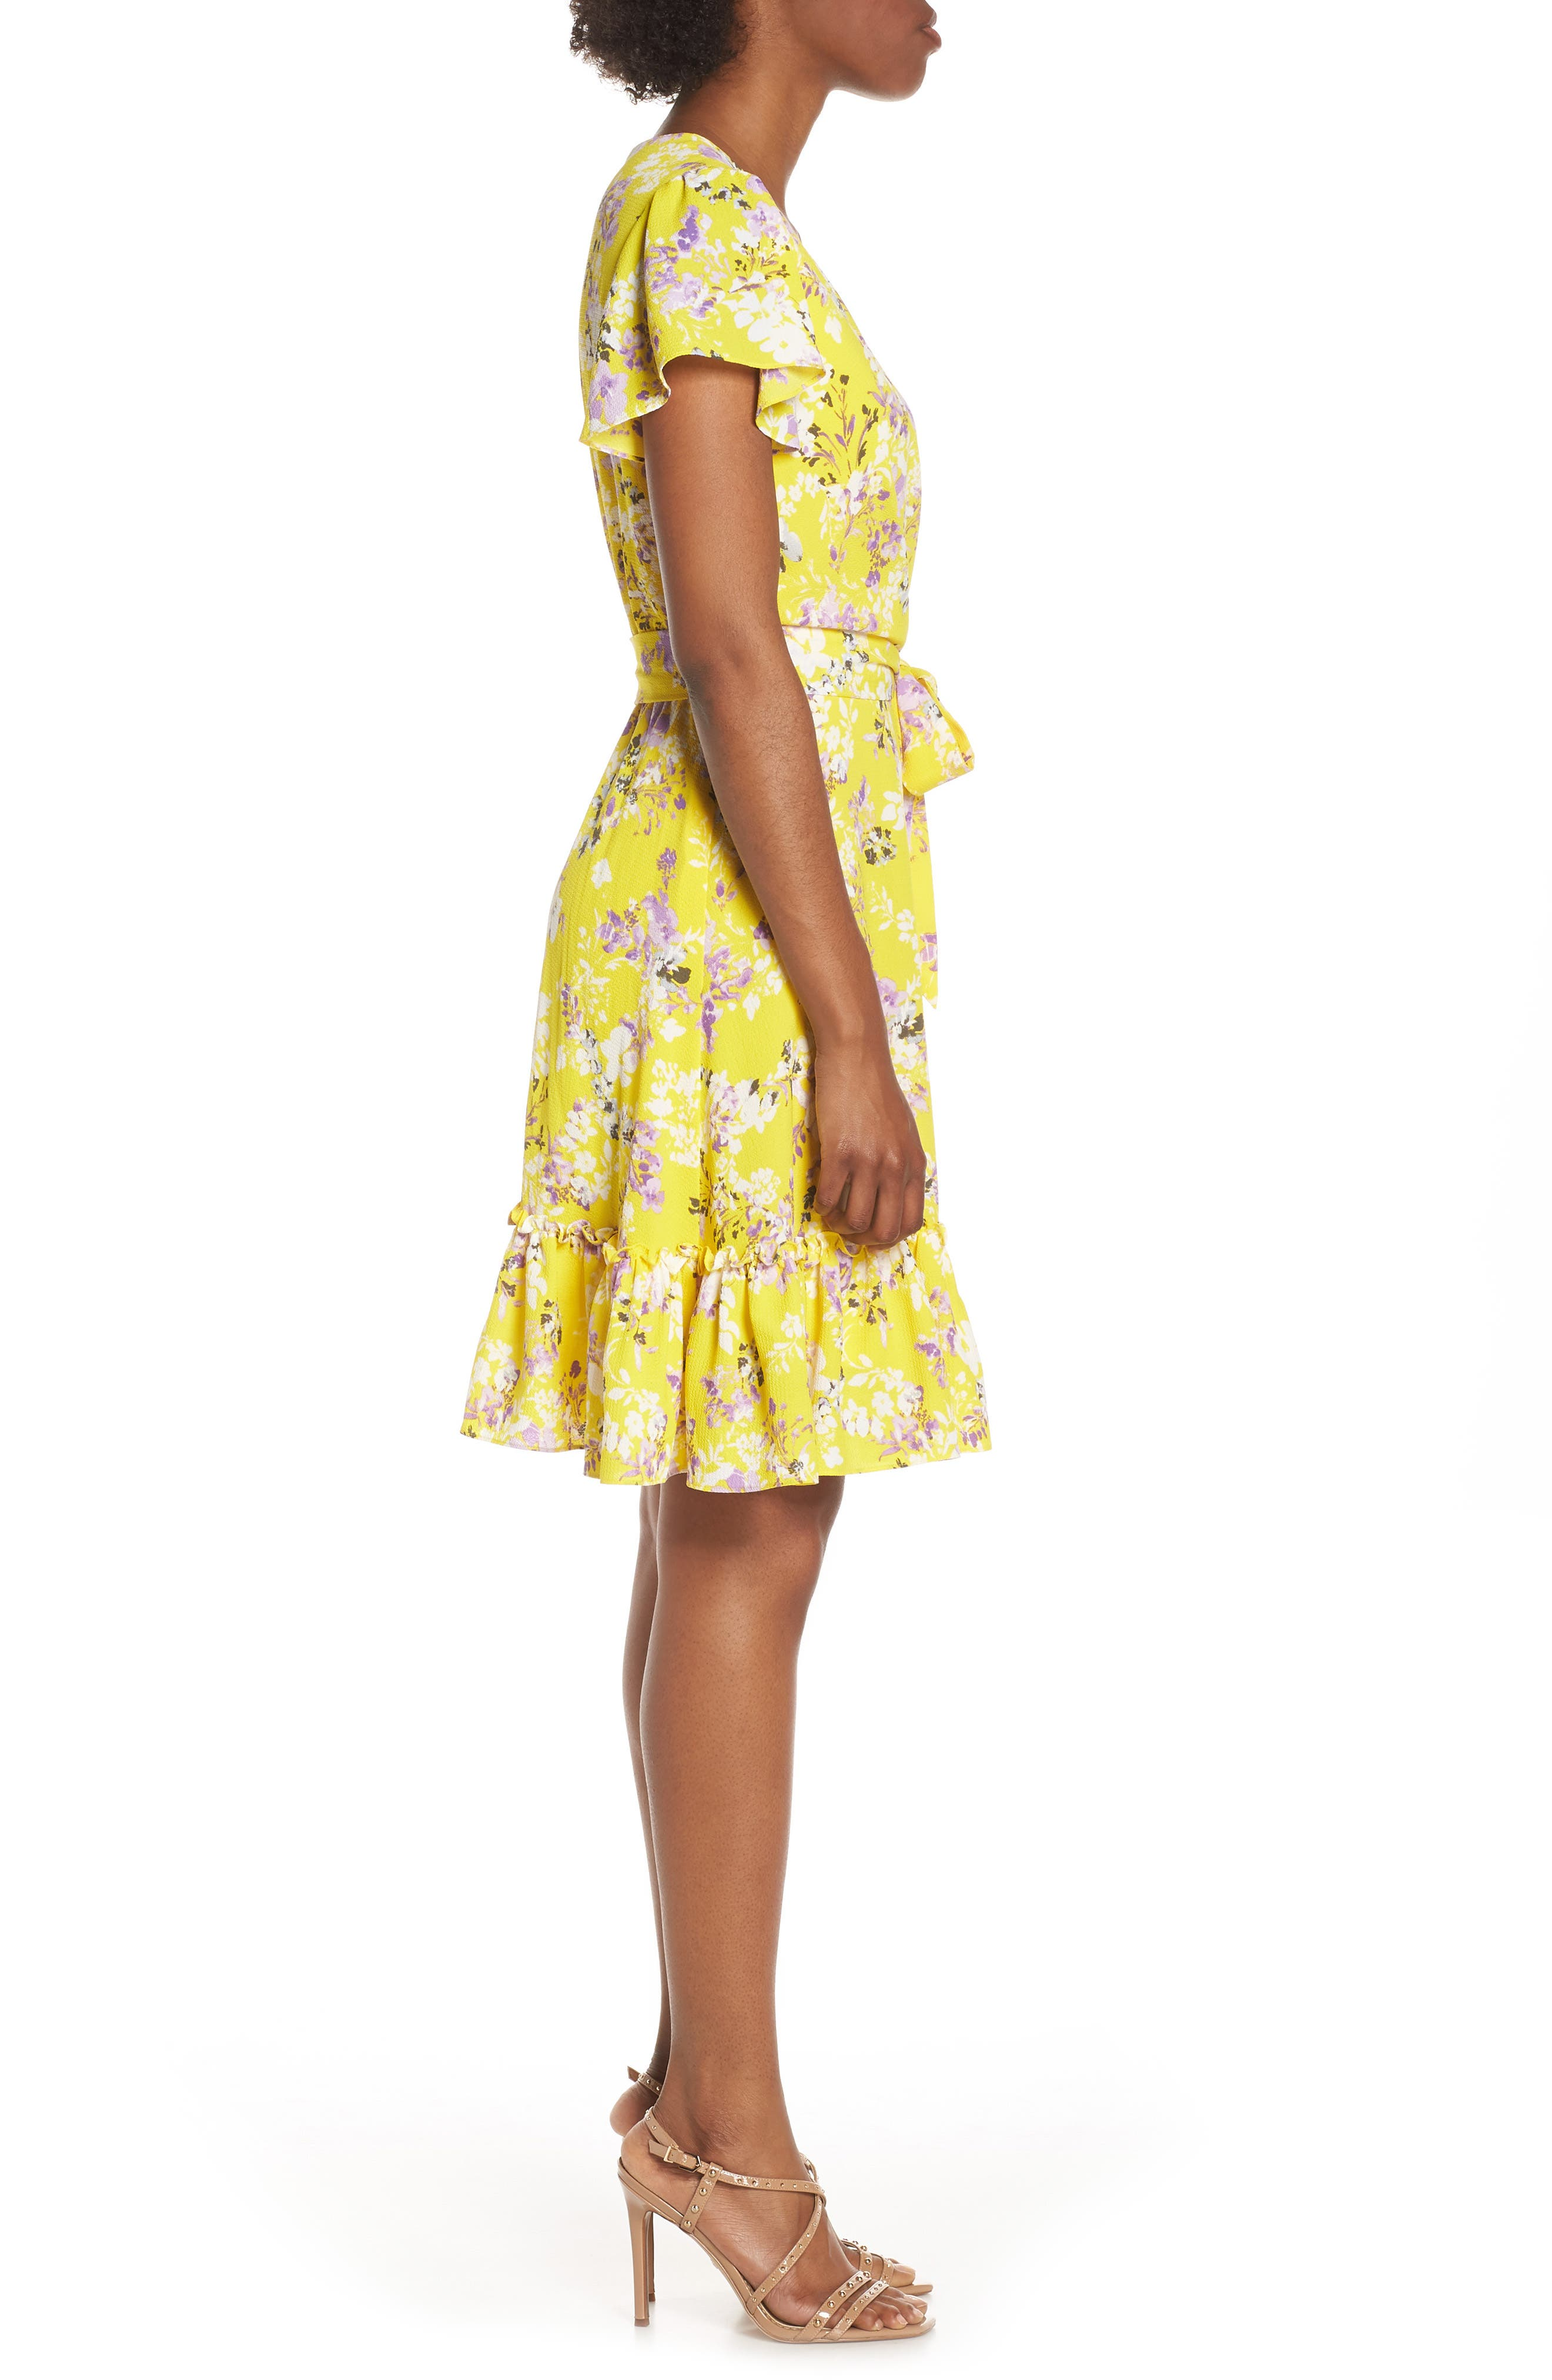 JULIA JORDAN, Floral Wrap Dress, Alternate thumbnail 4, color, YELLOW MULTI